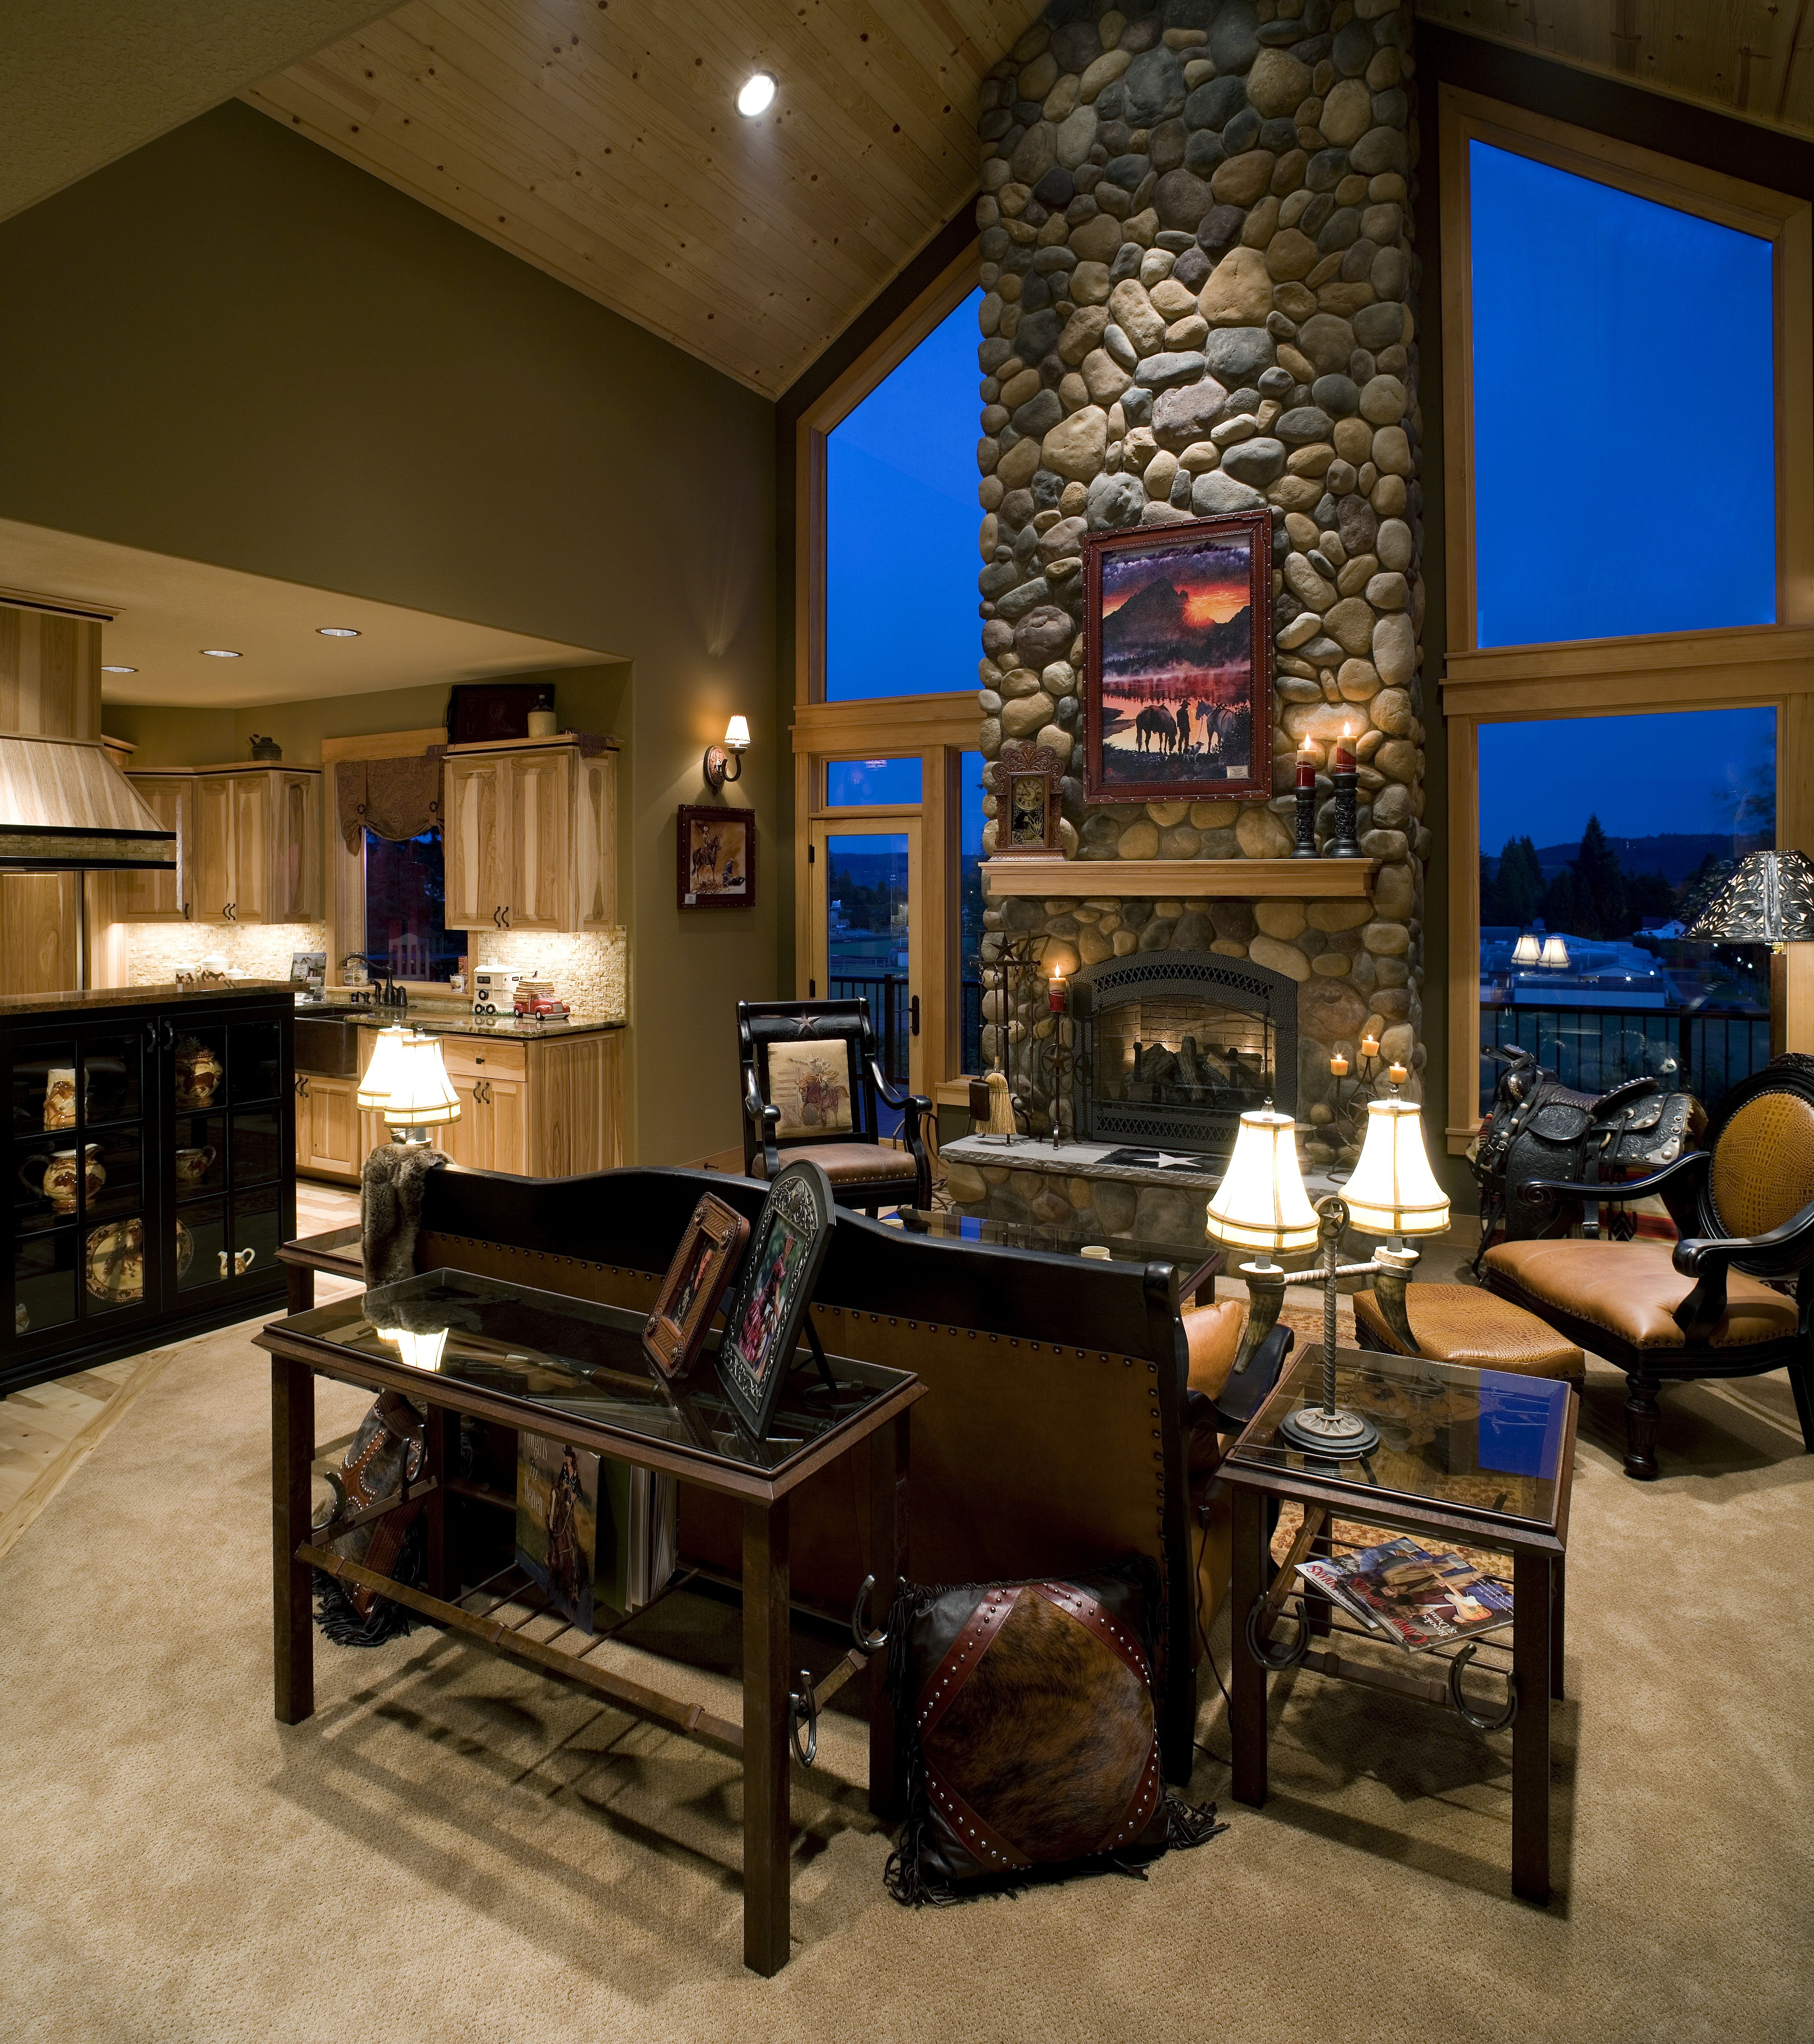 Vaulted Living Room Floor Plans: A Gorgeous River Rock Fireplace Wall With Large Windows